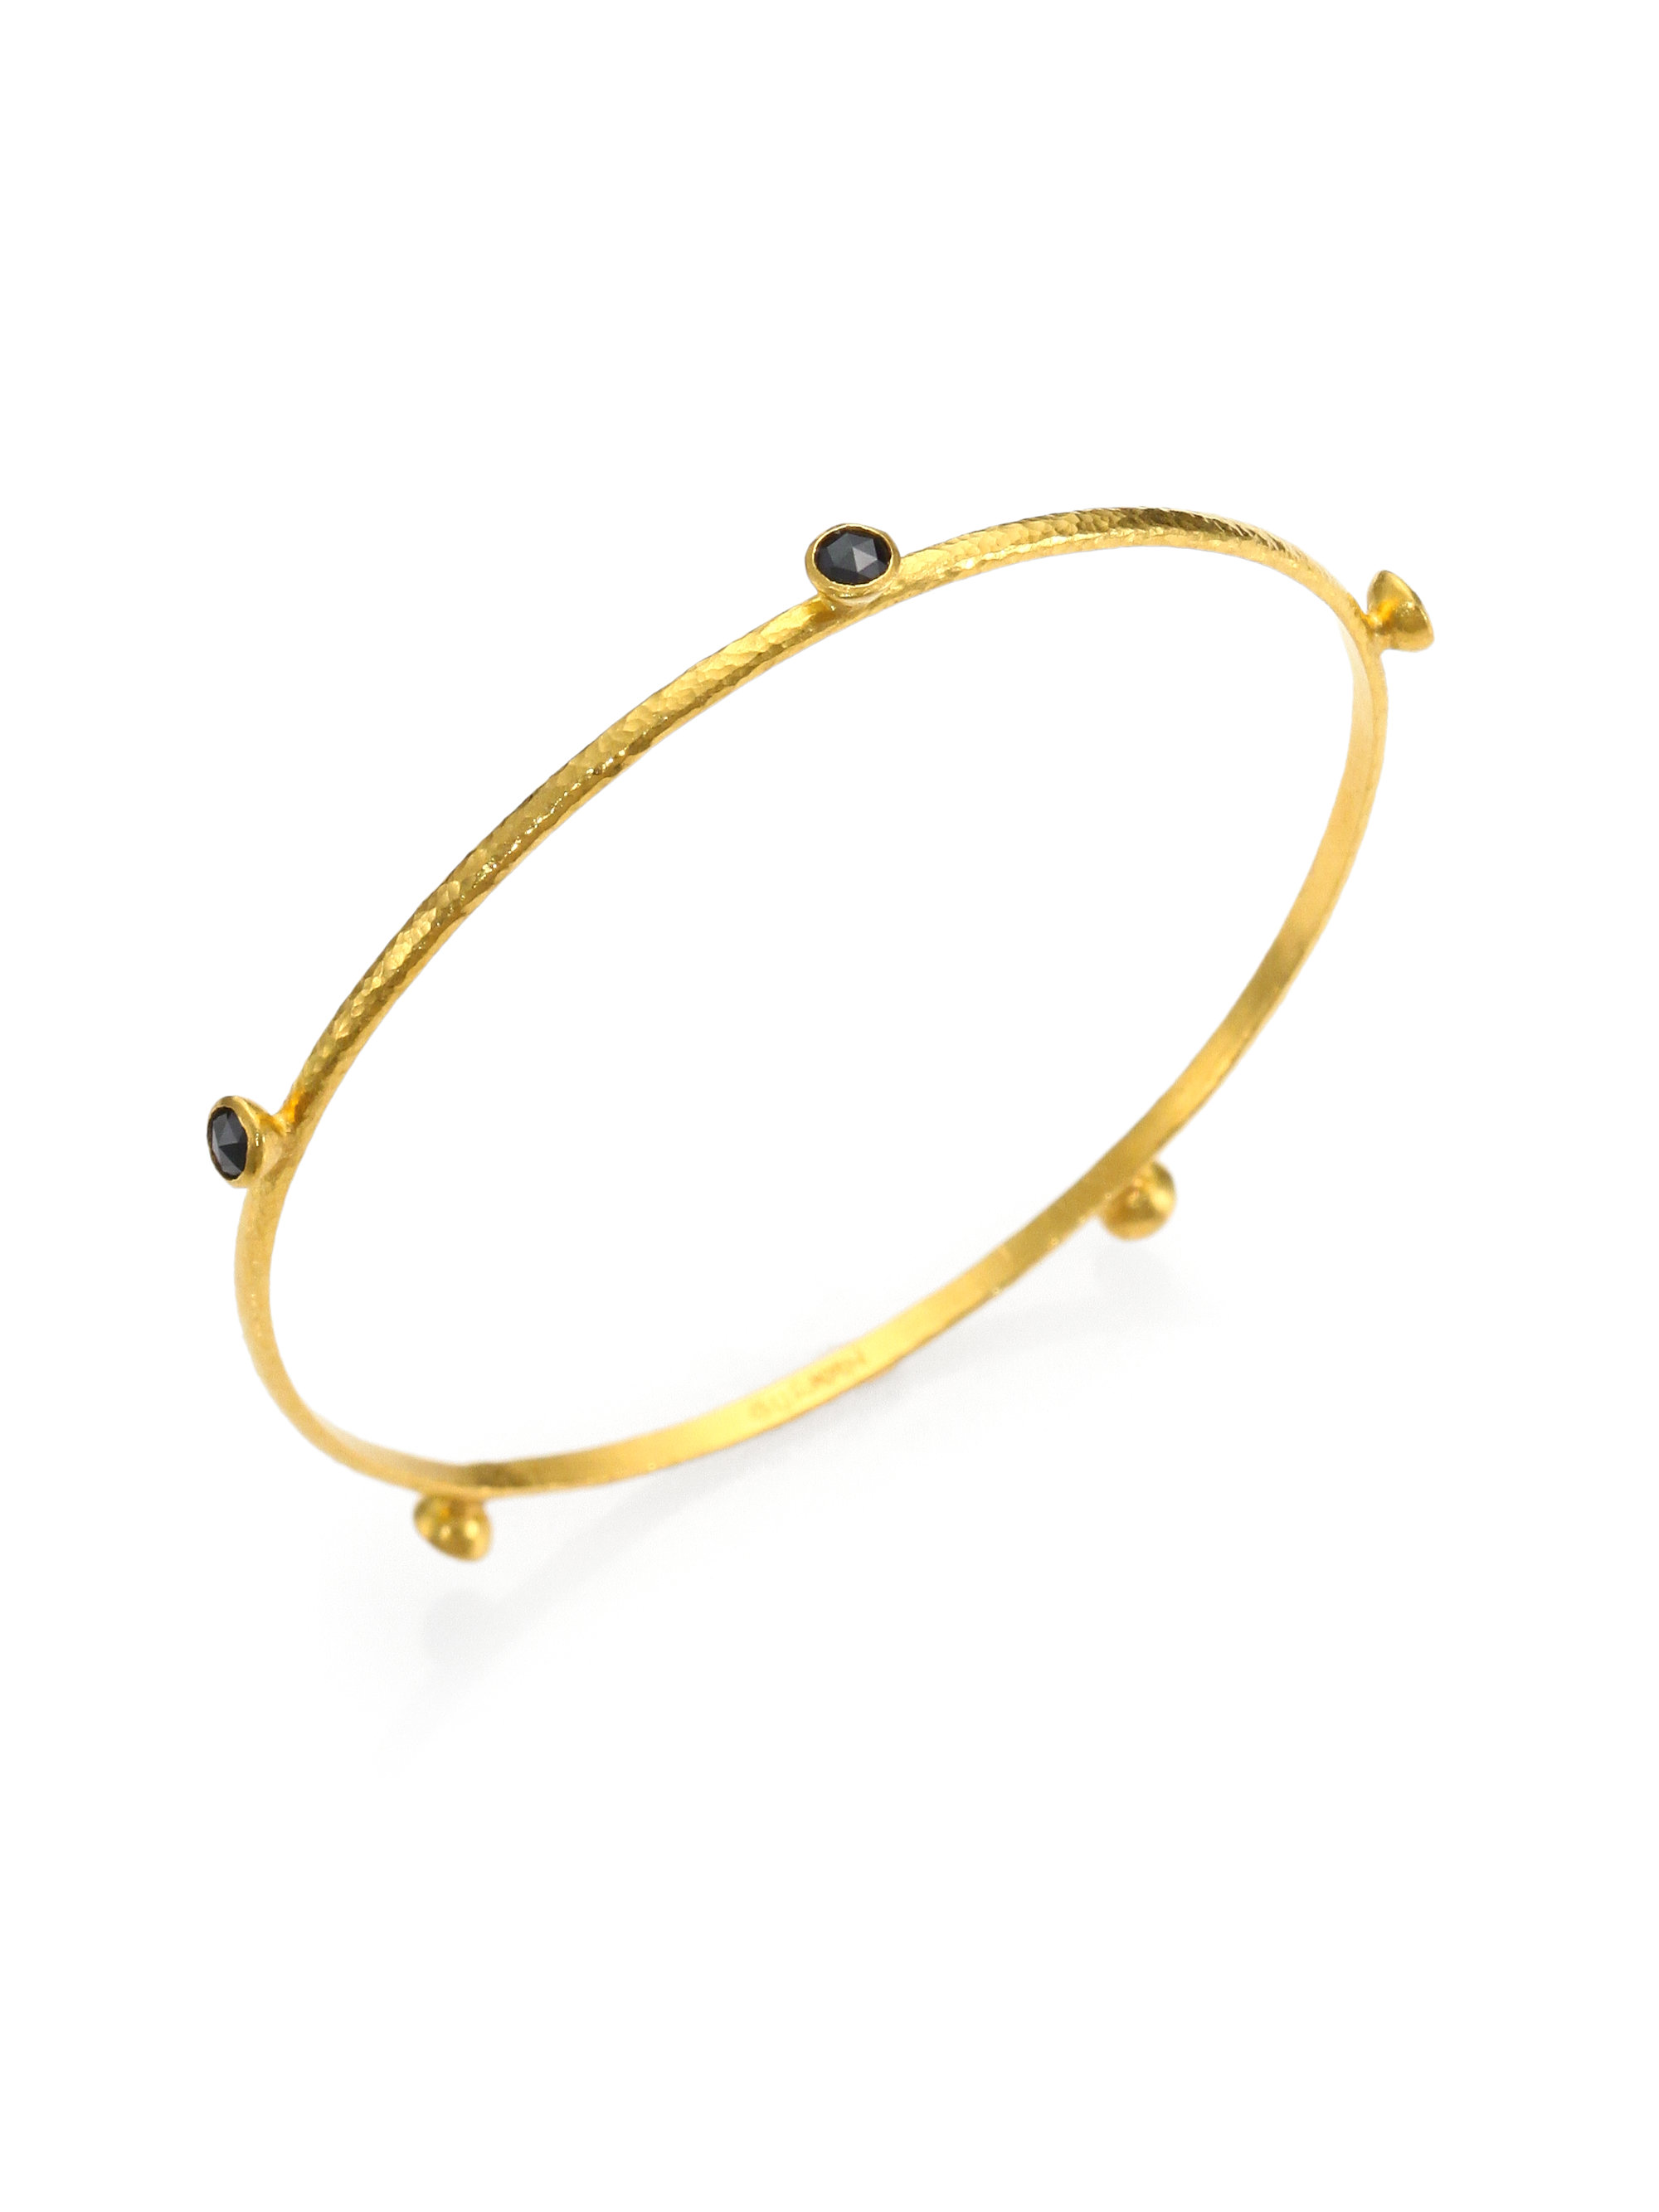 Gurhan 24k Constellation Bangle with Three Black Diamonds UKpNP3S7j8